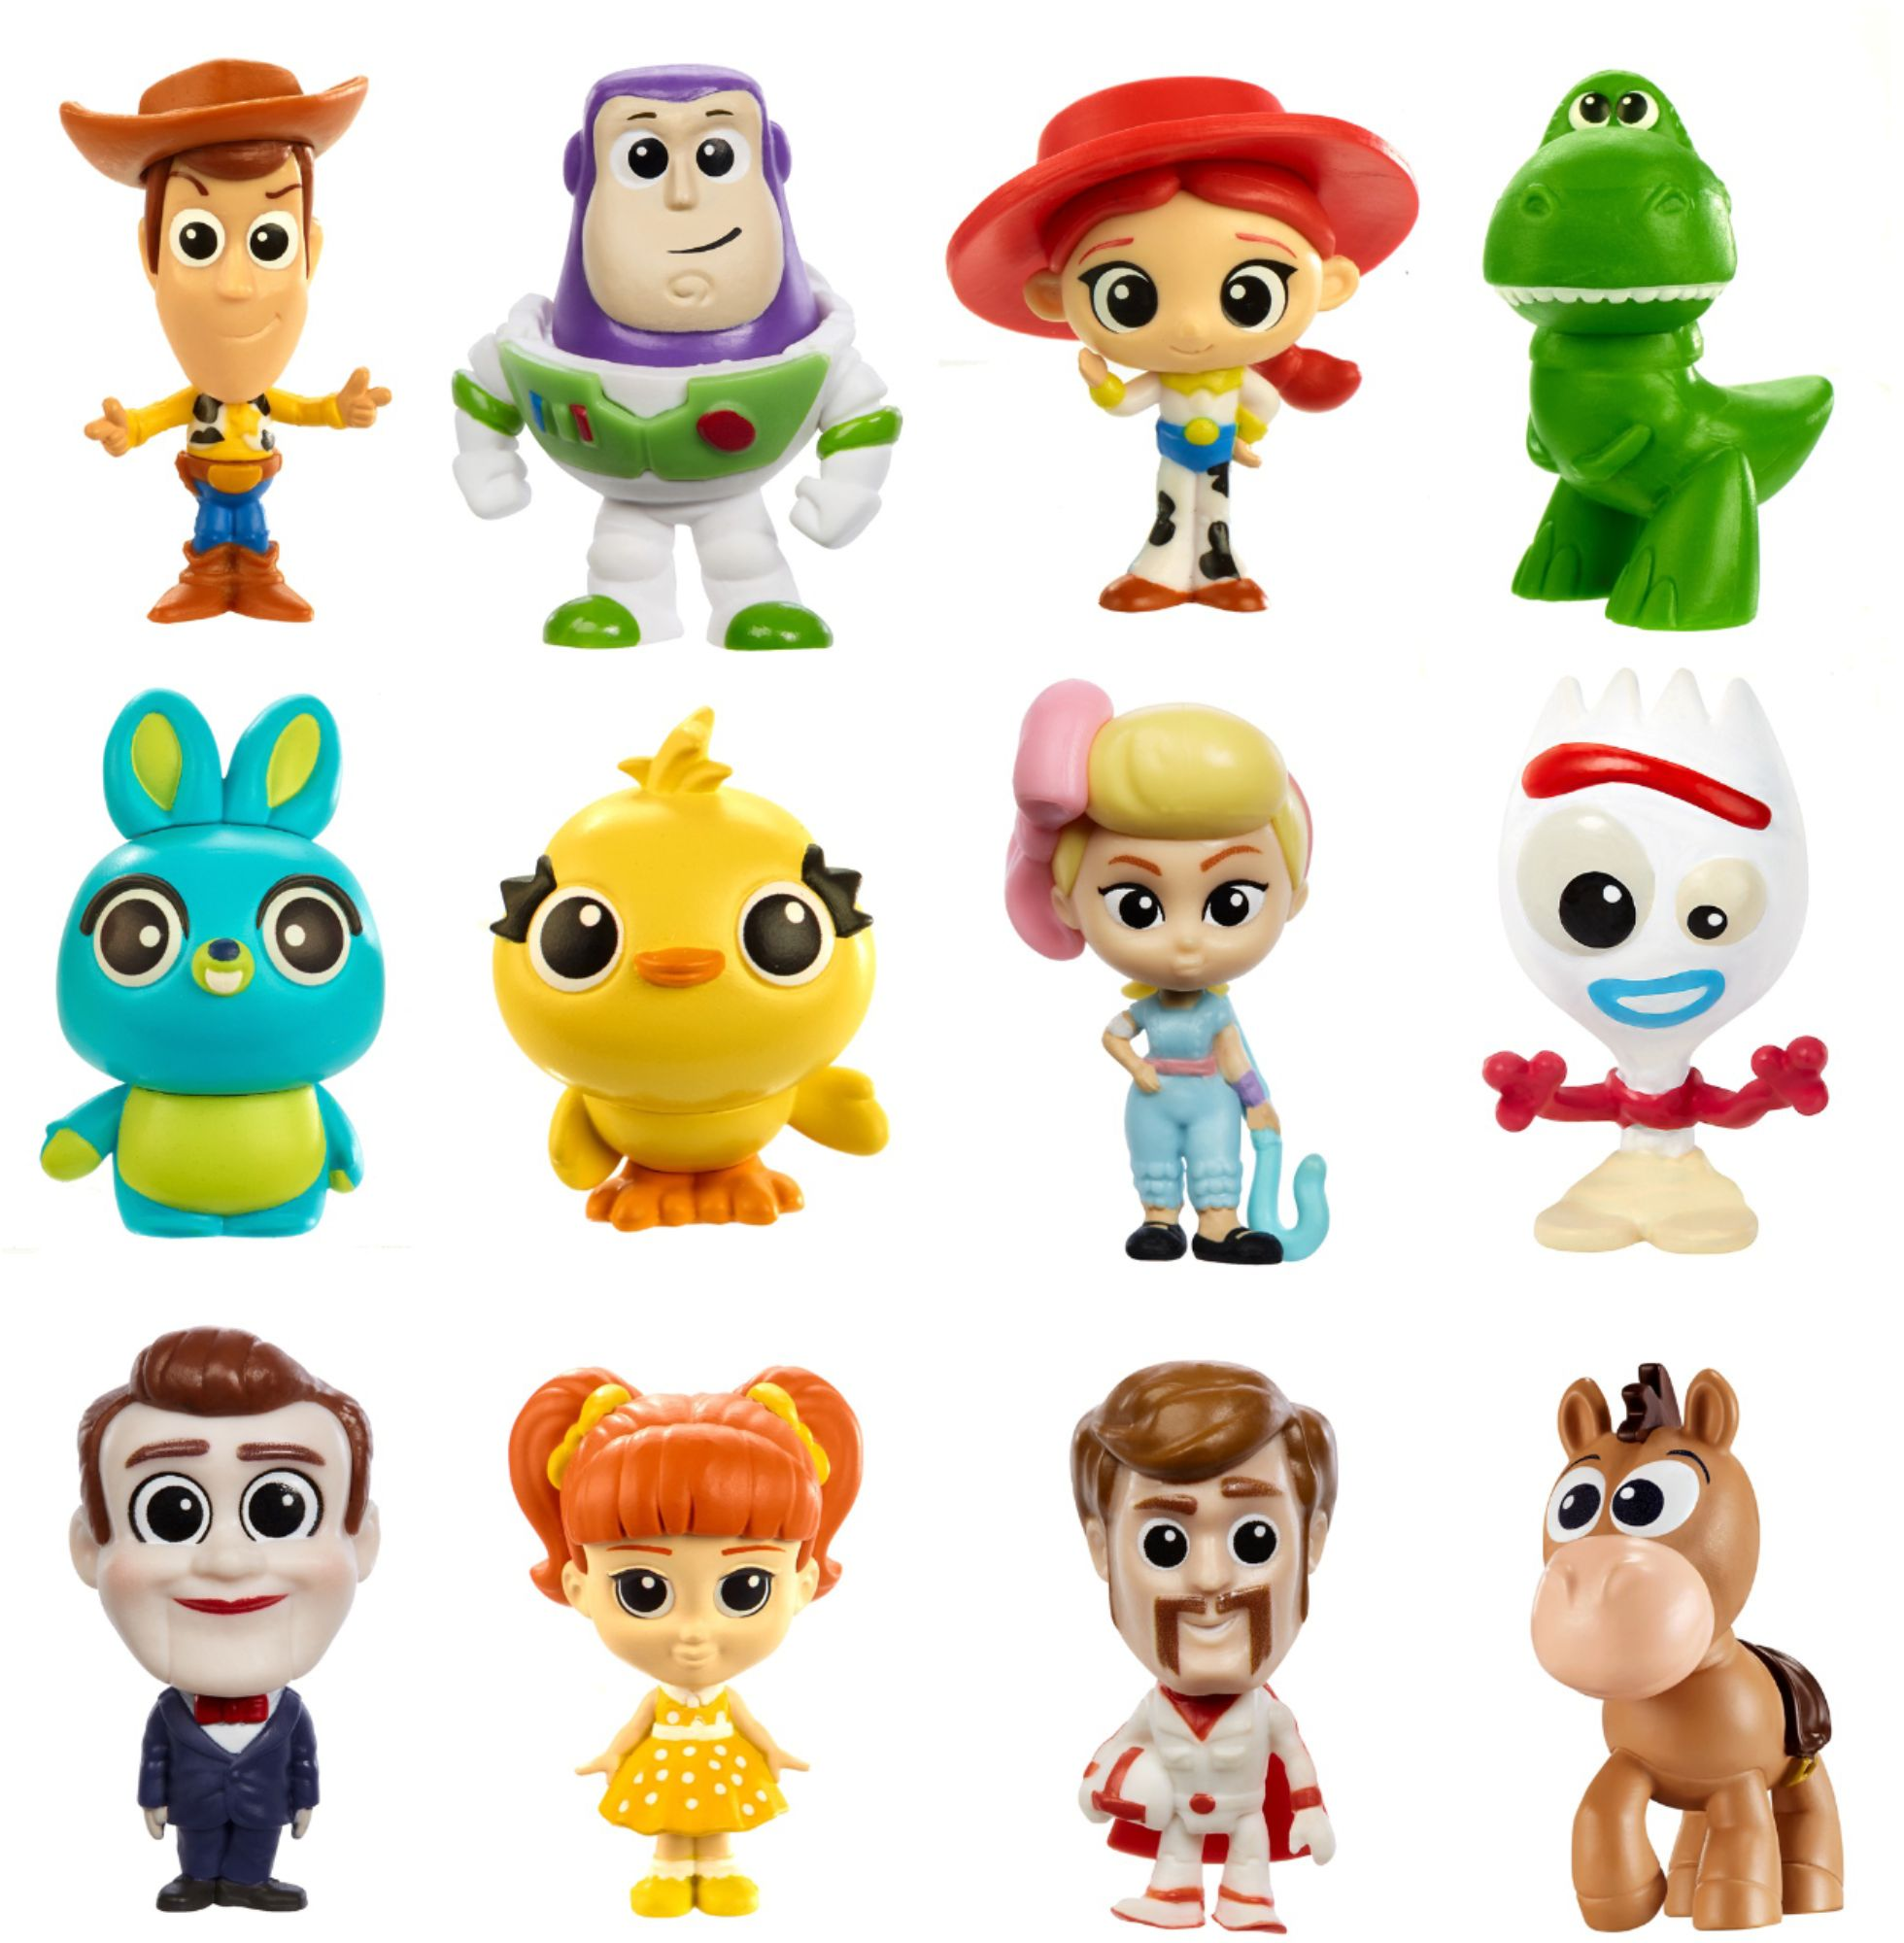 Disney Pixar Toy Story 4 Mini Figure Styles May Vary Gcy17